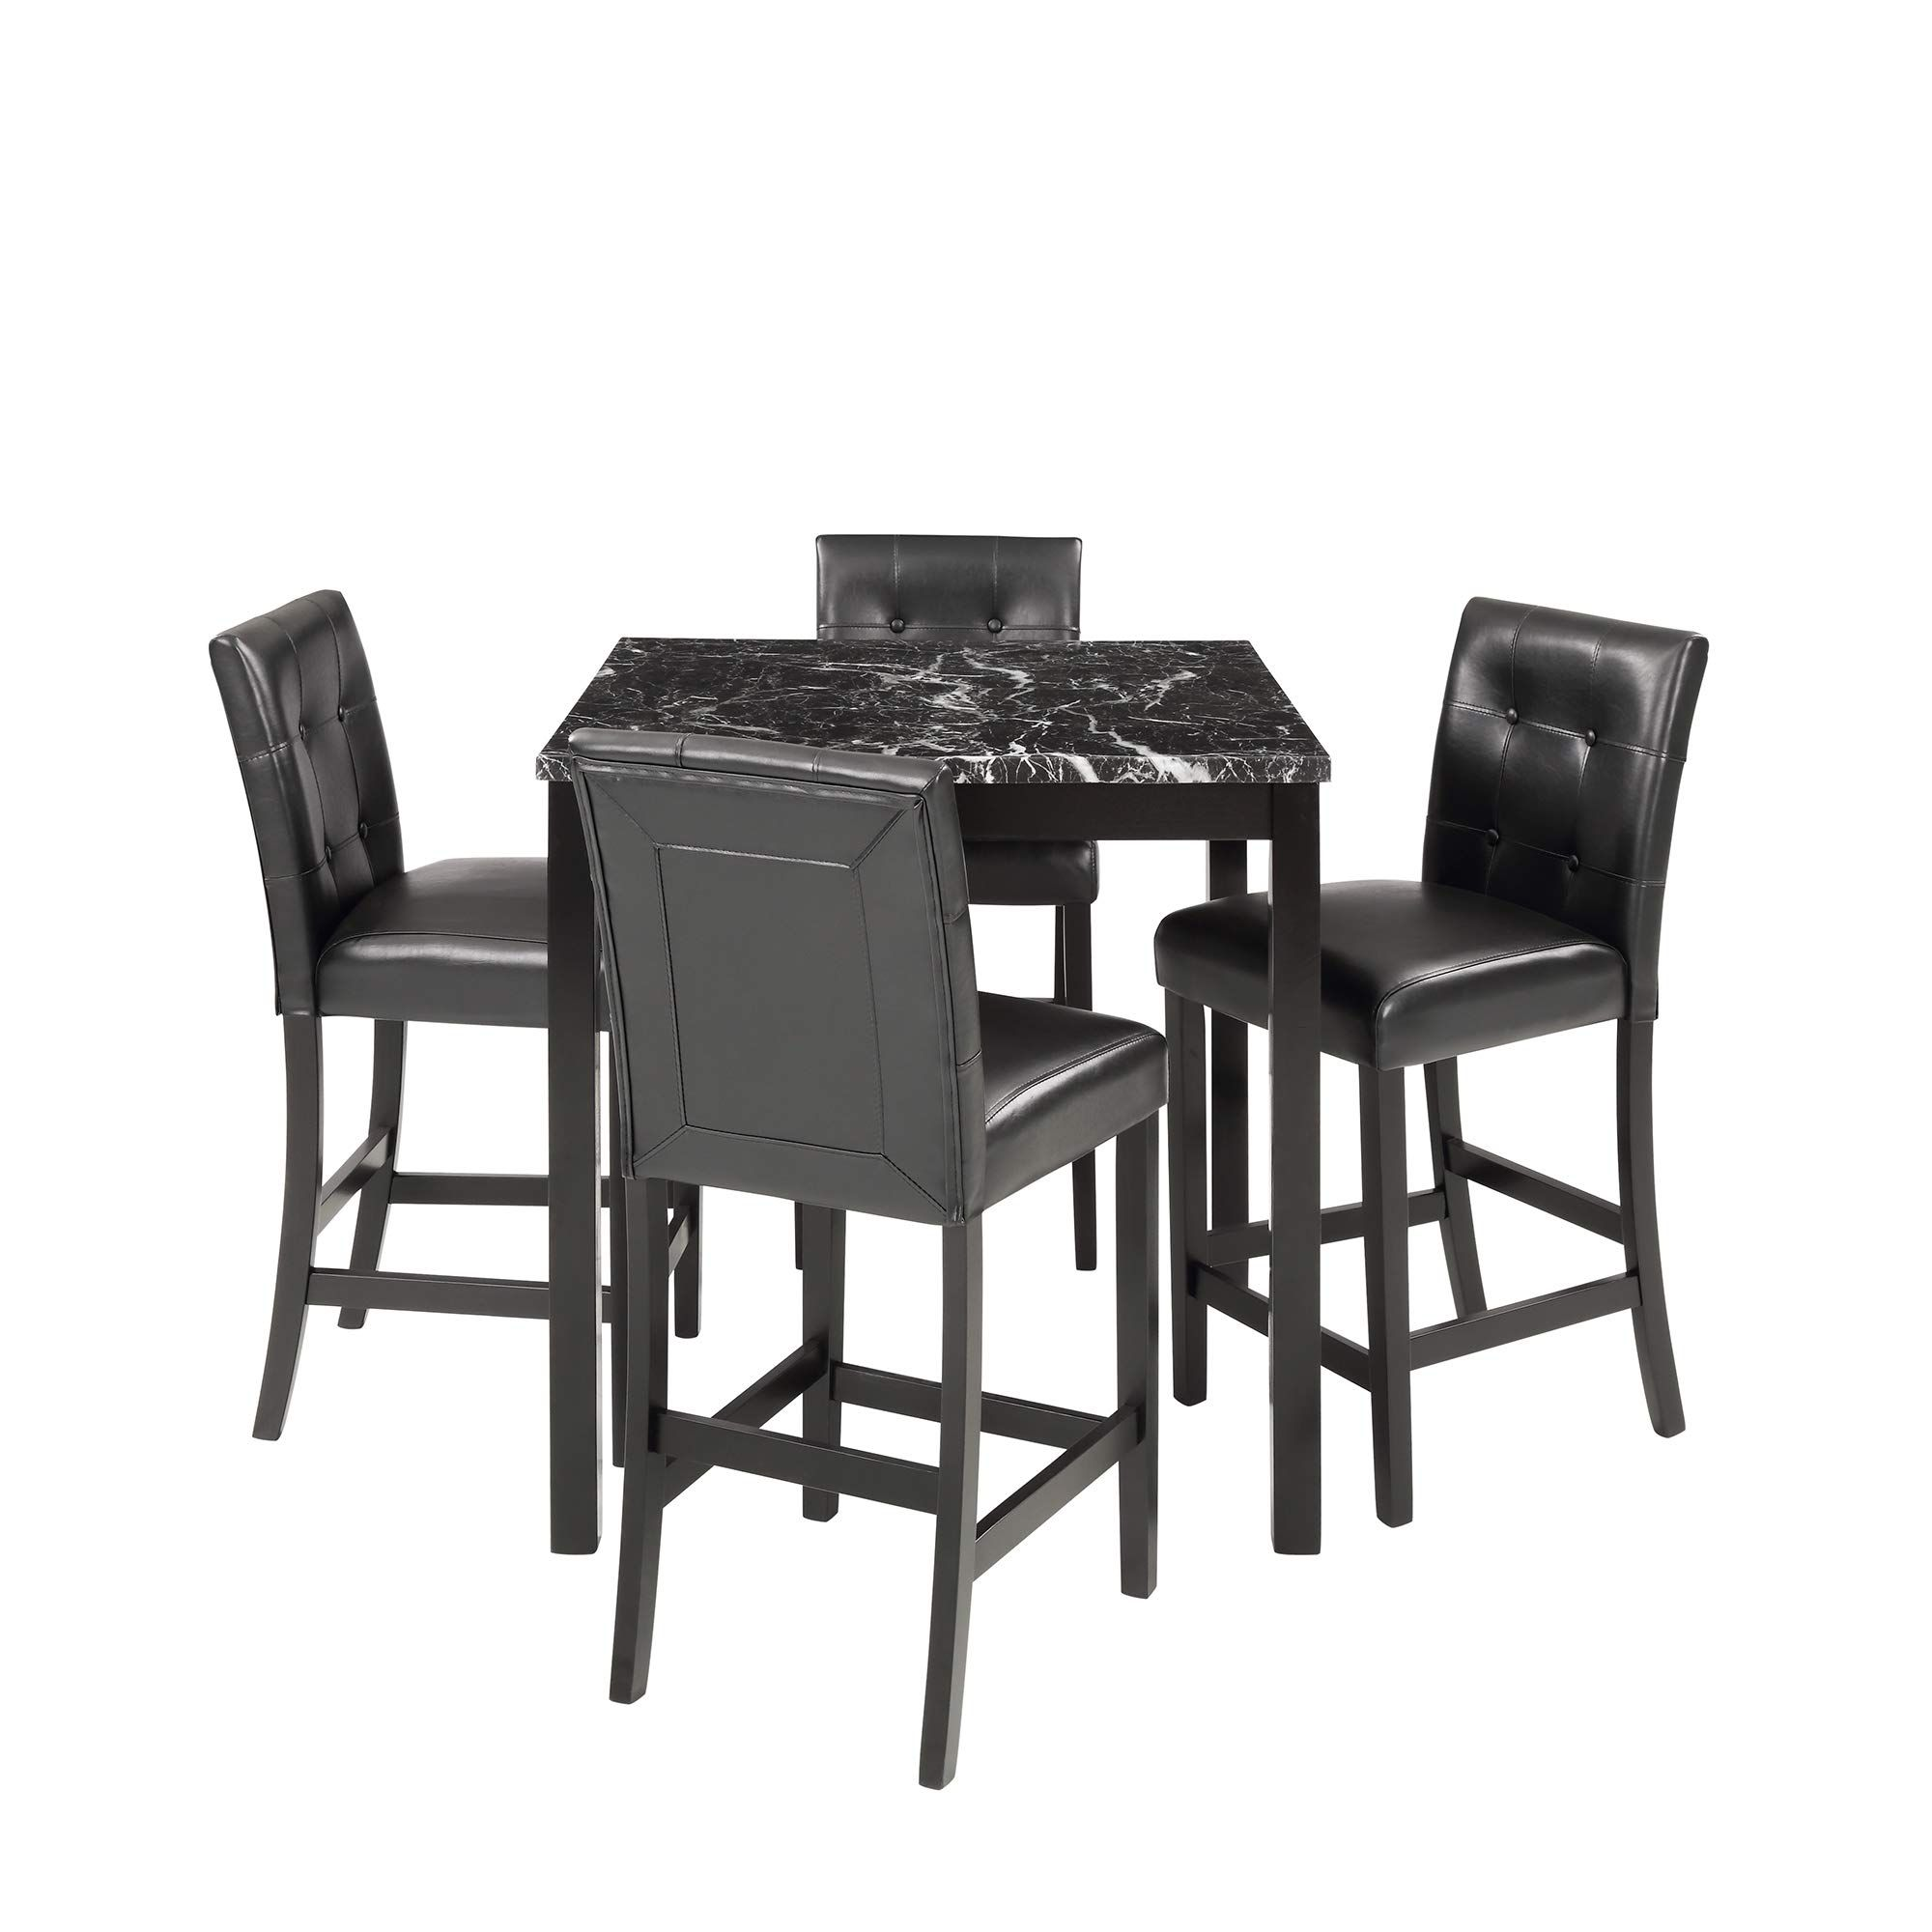 5 Piece Counter Height Dining Set Kitchen Table Furniture Set With 4 Chairs Dining Room Table Counter Height Dining Sets Nook Dining Set Dining Room Table Set